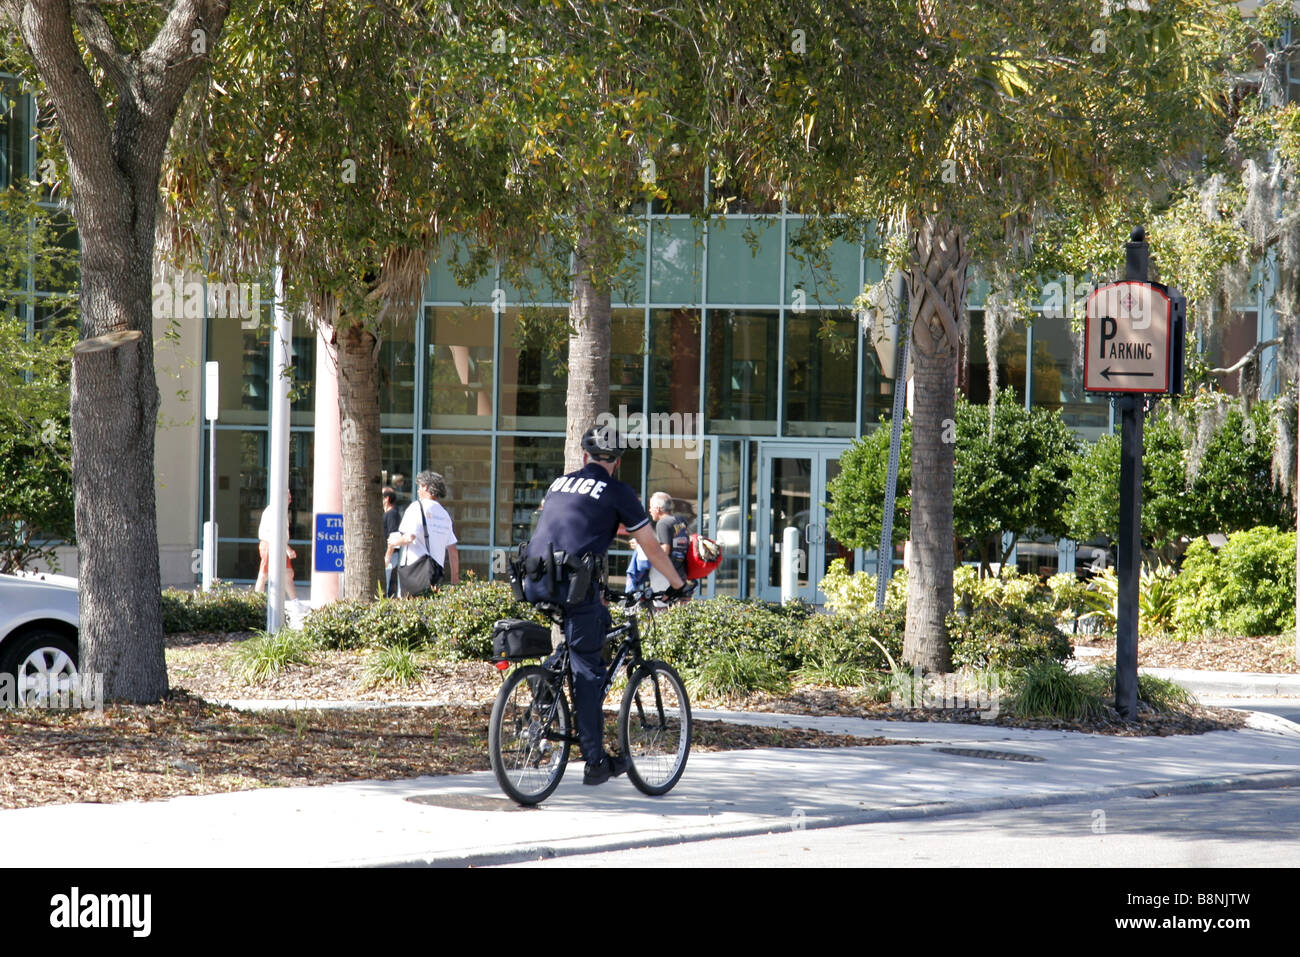 Cop on bicycle in Clearwater Florida USA - Stock Image